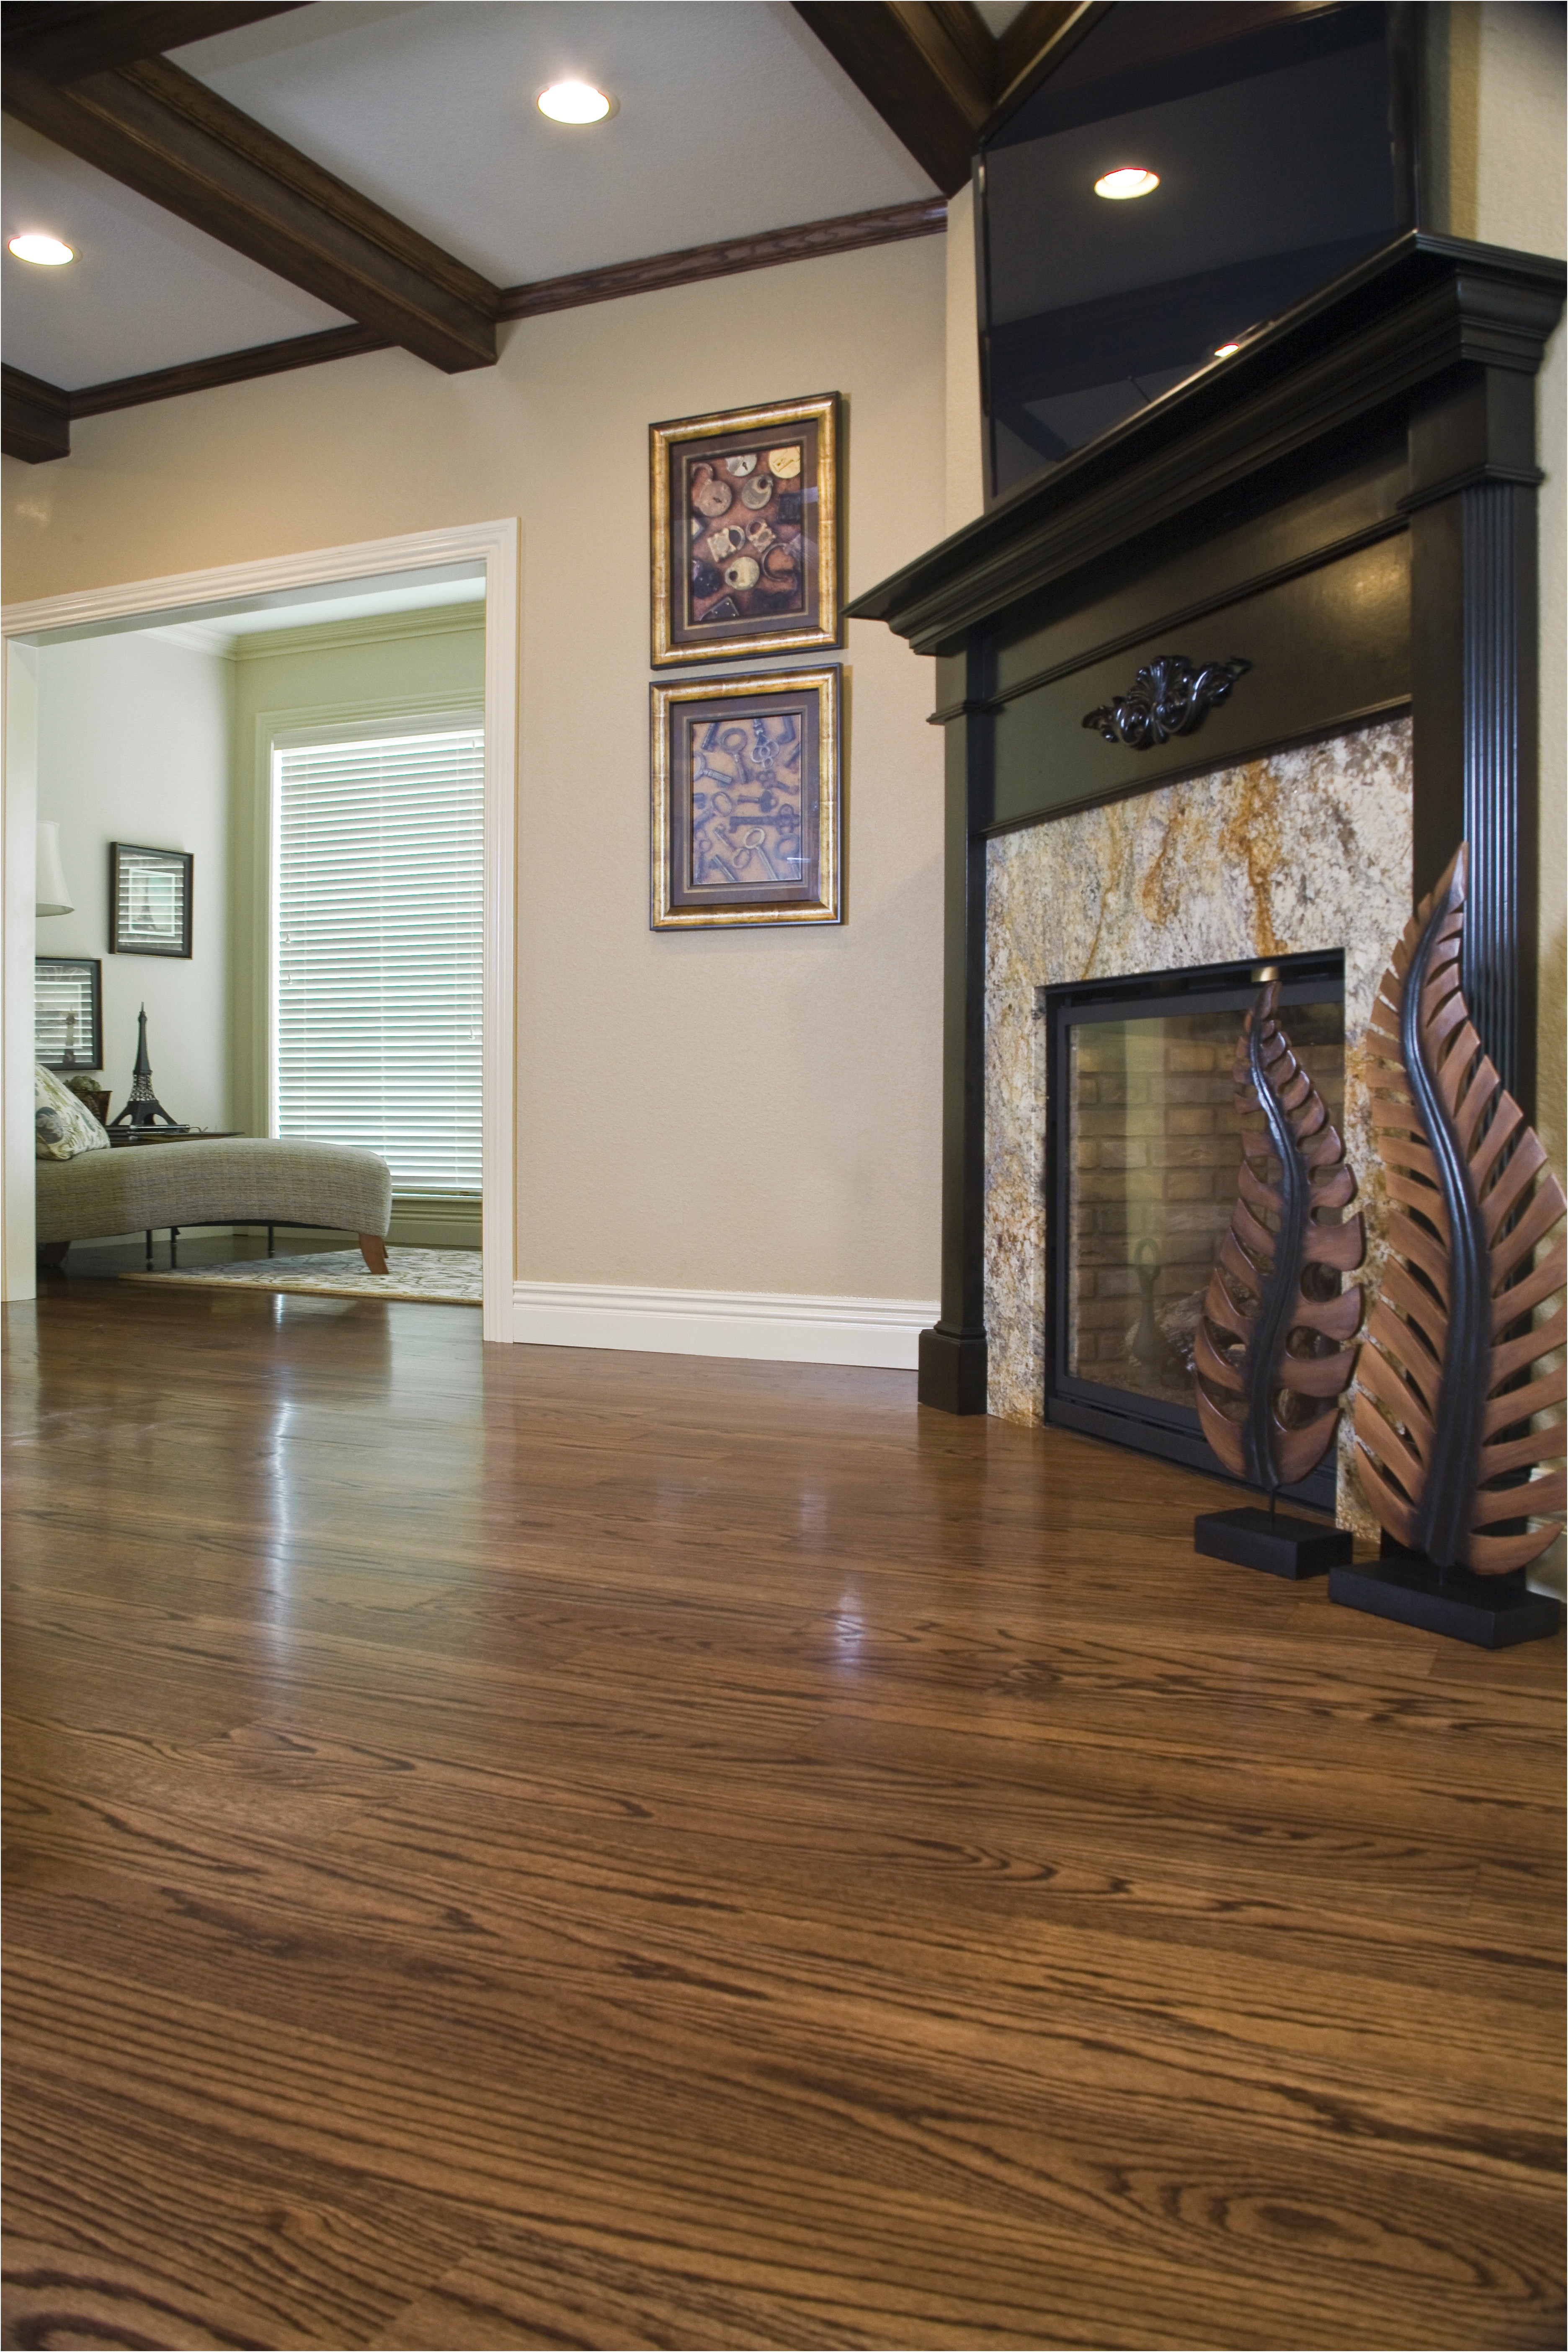 unfinished hardwood flooring suppliers of unfinished hardwood flooring for sale luxury elegant hardwood with regard to unfinished hardwood flooring for sale luxury elegant hardwood flooring products products maxwell manufacturer